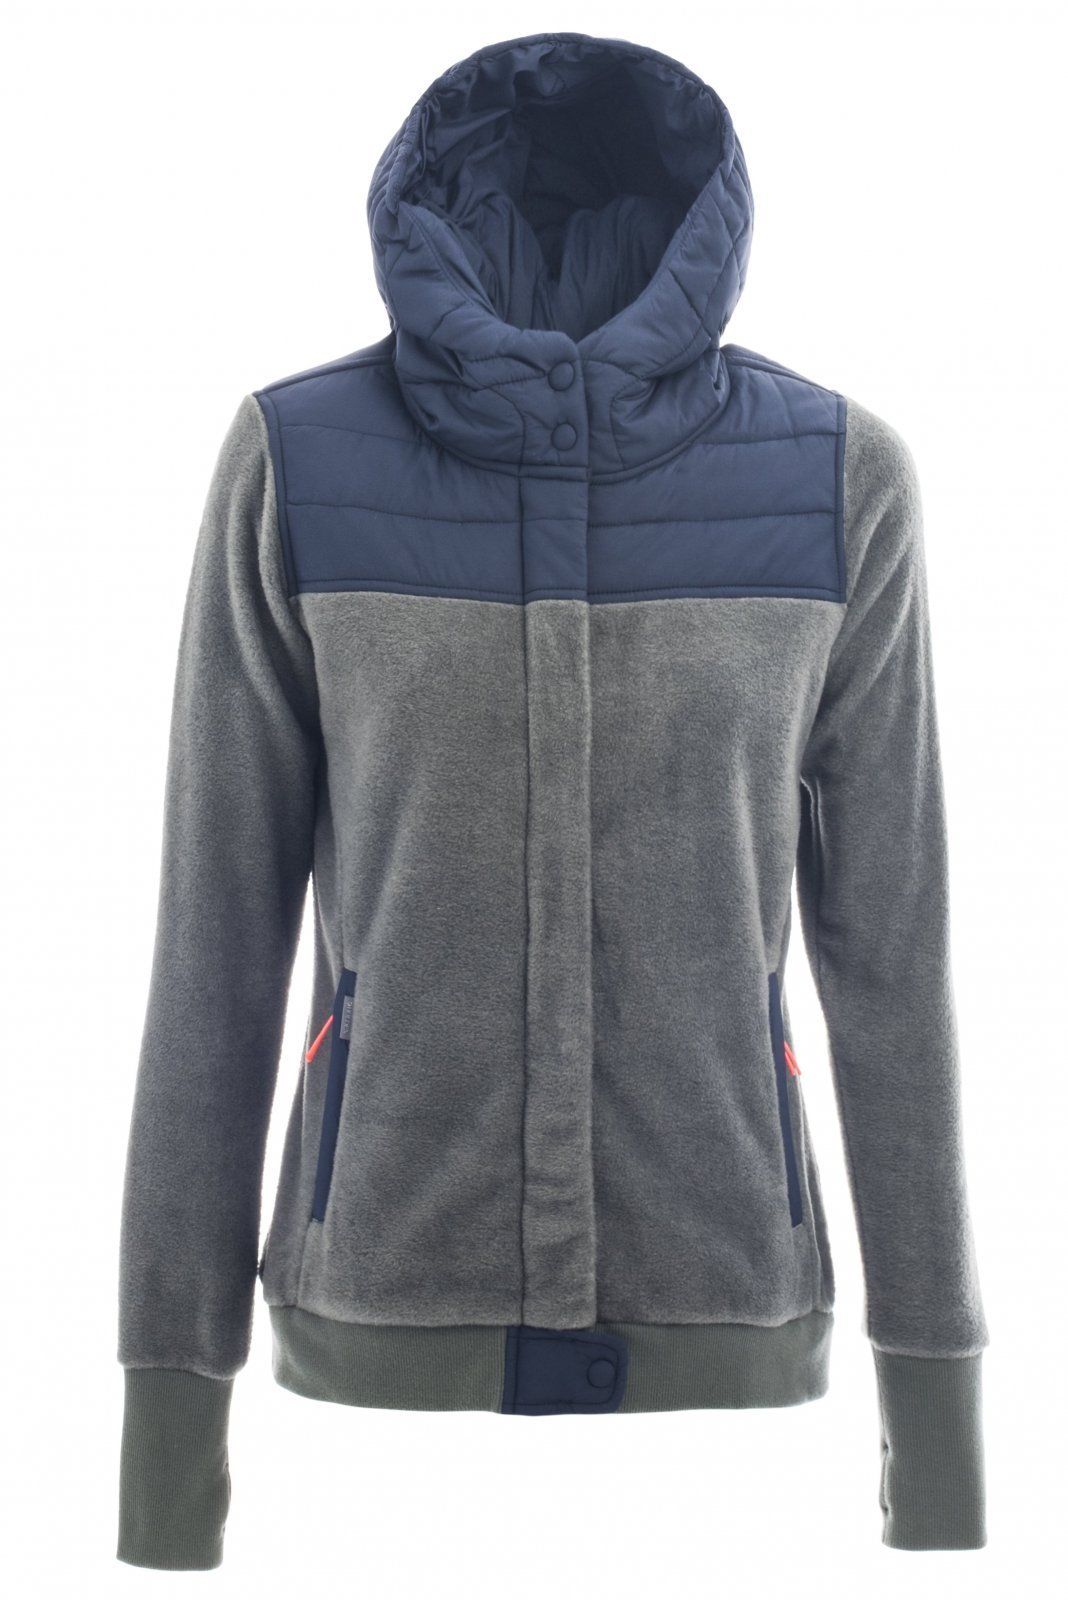 Holden Women's Sherpa Hybrid Zip Up